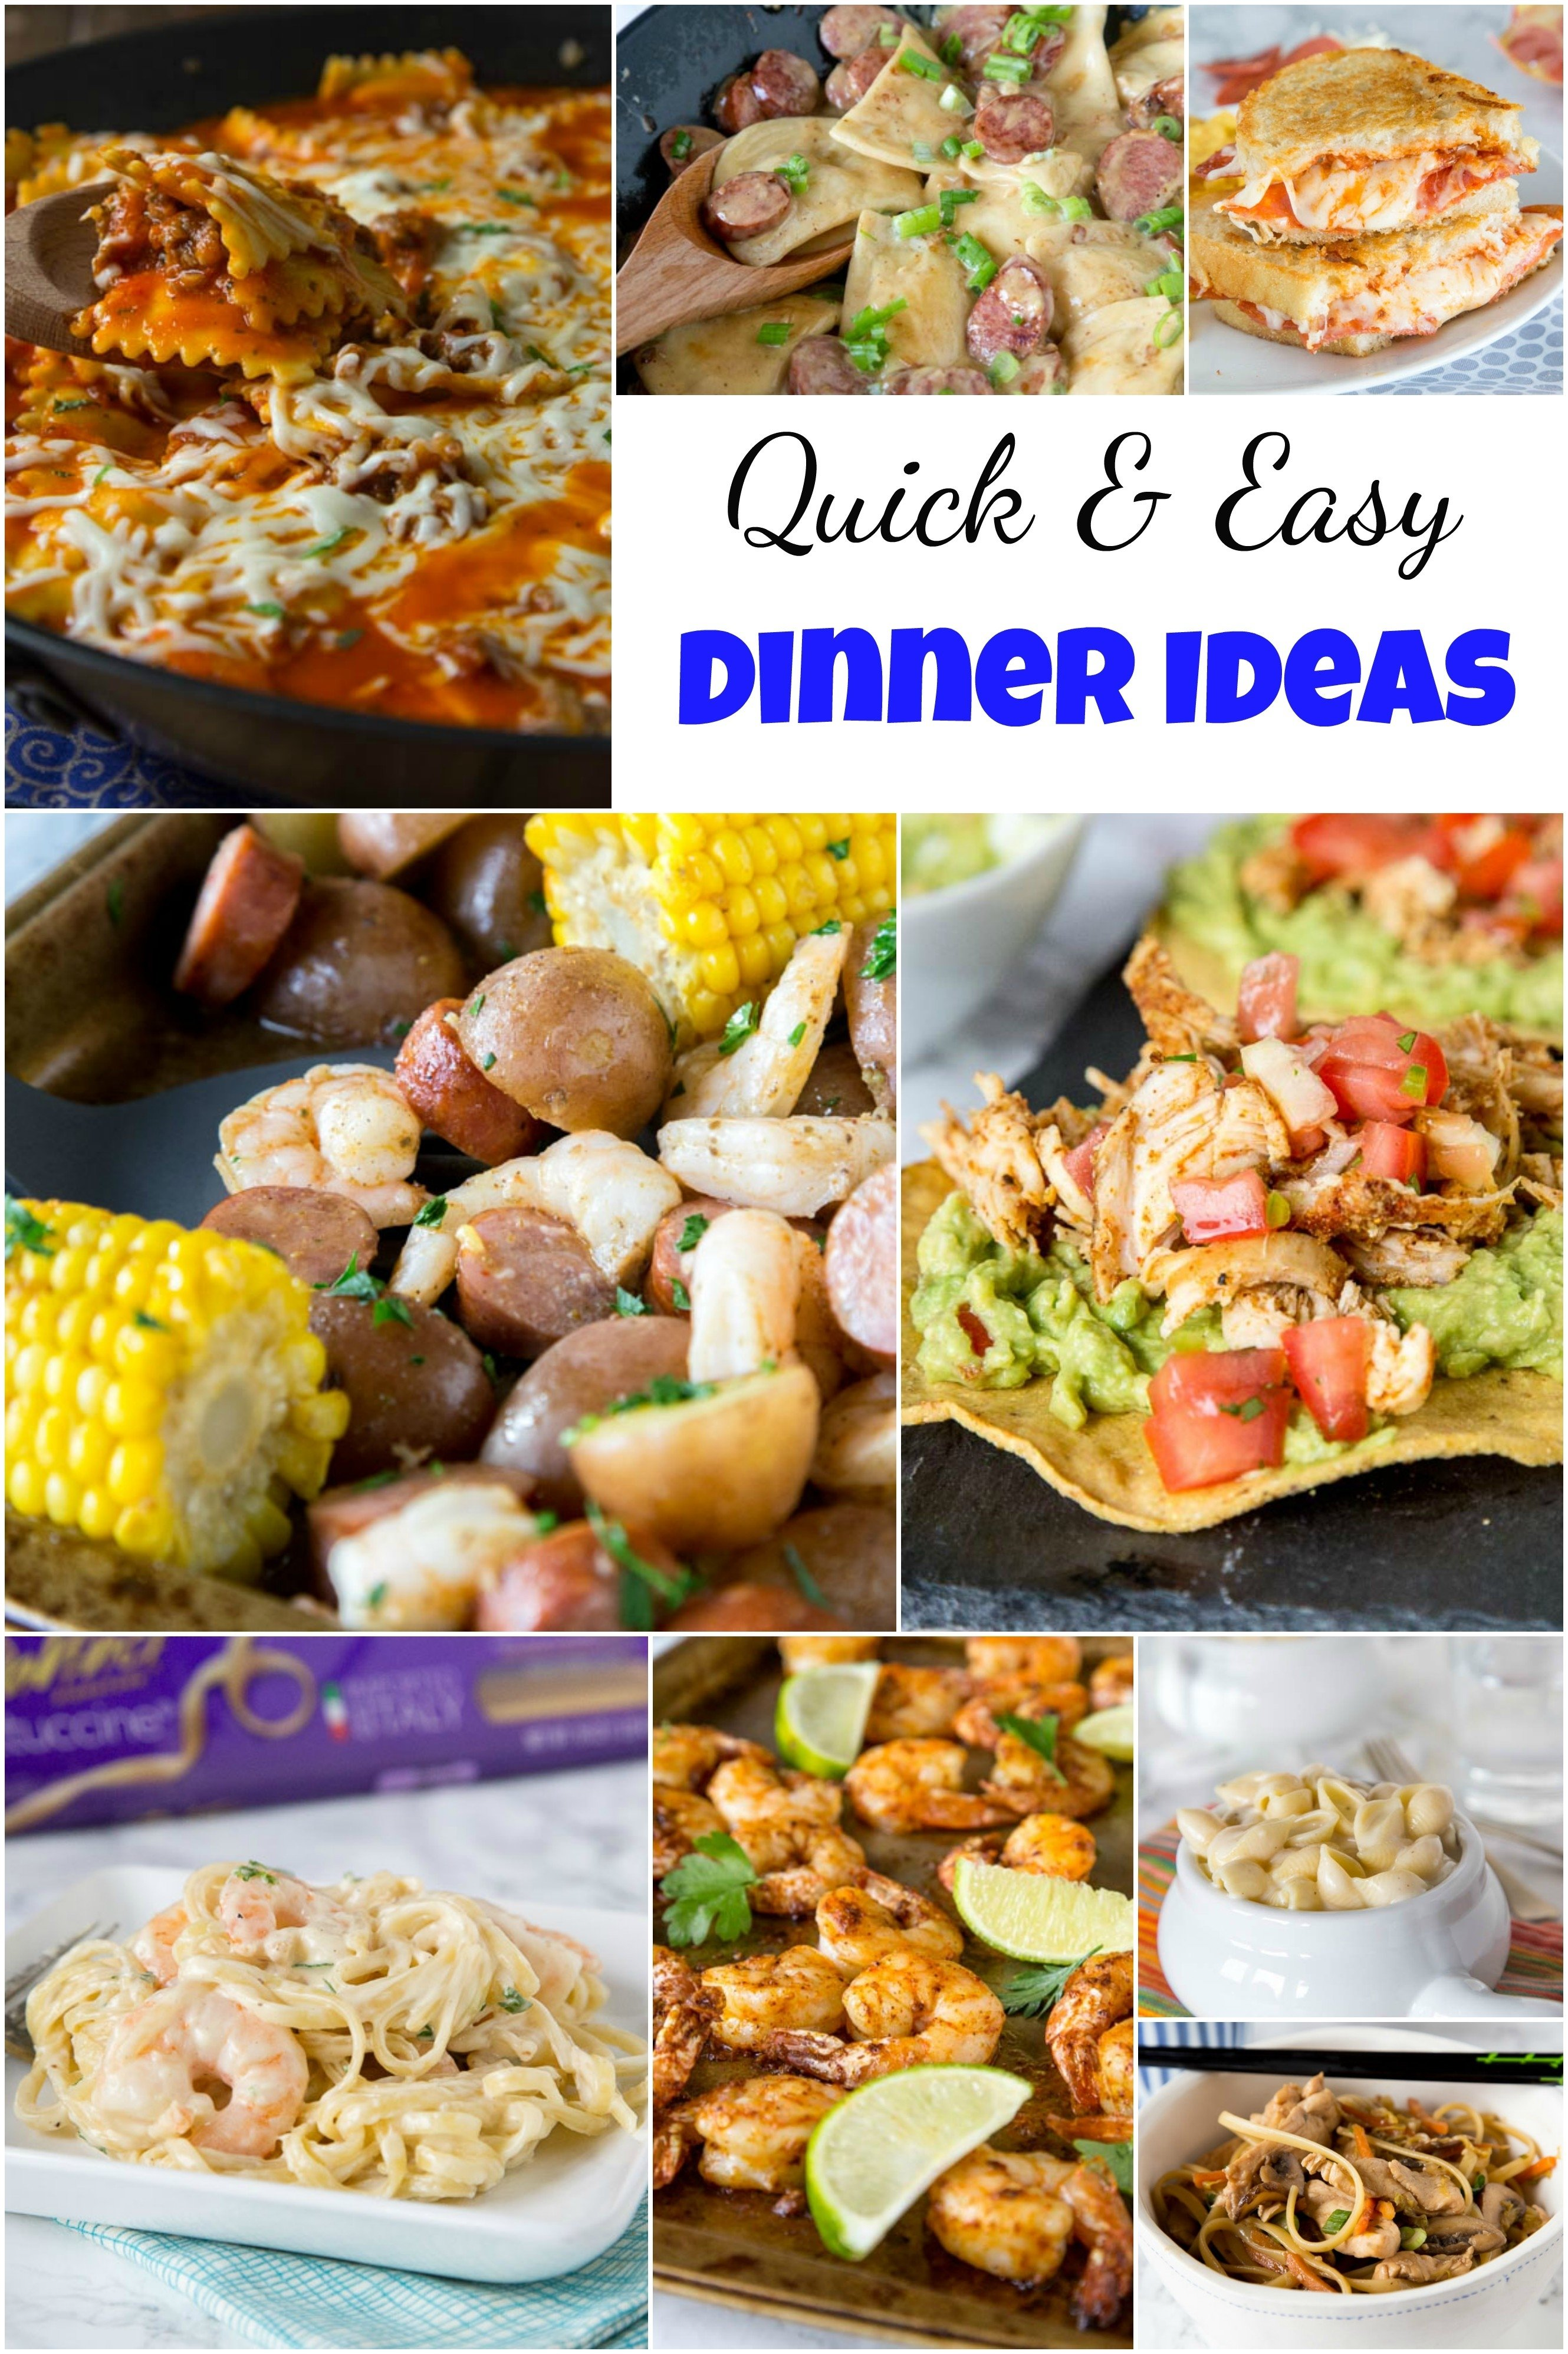 10 Unique Dinner Ideas Quick And Easy quick and easy dinner ideas dinners dishes and desserts 1